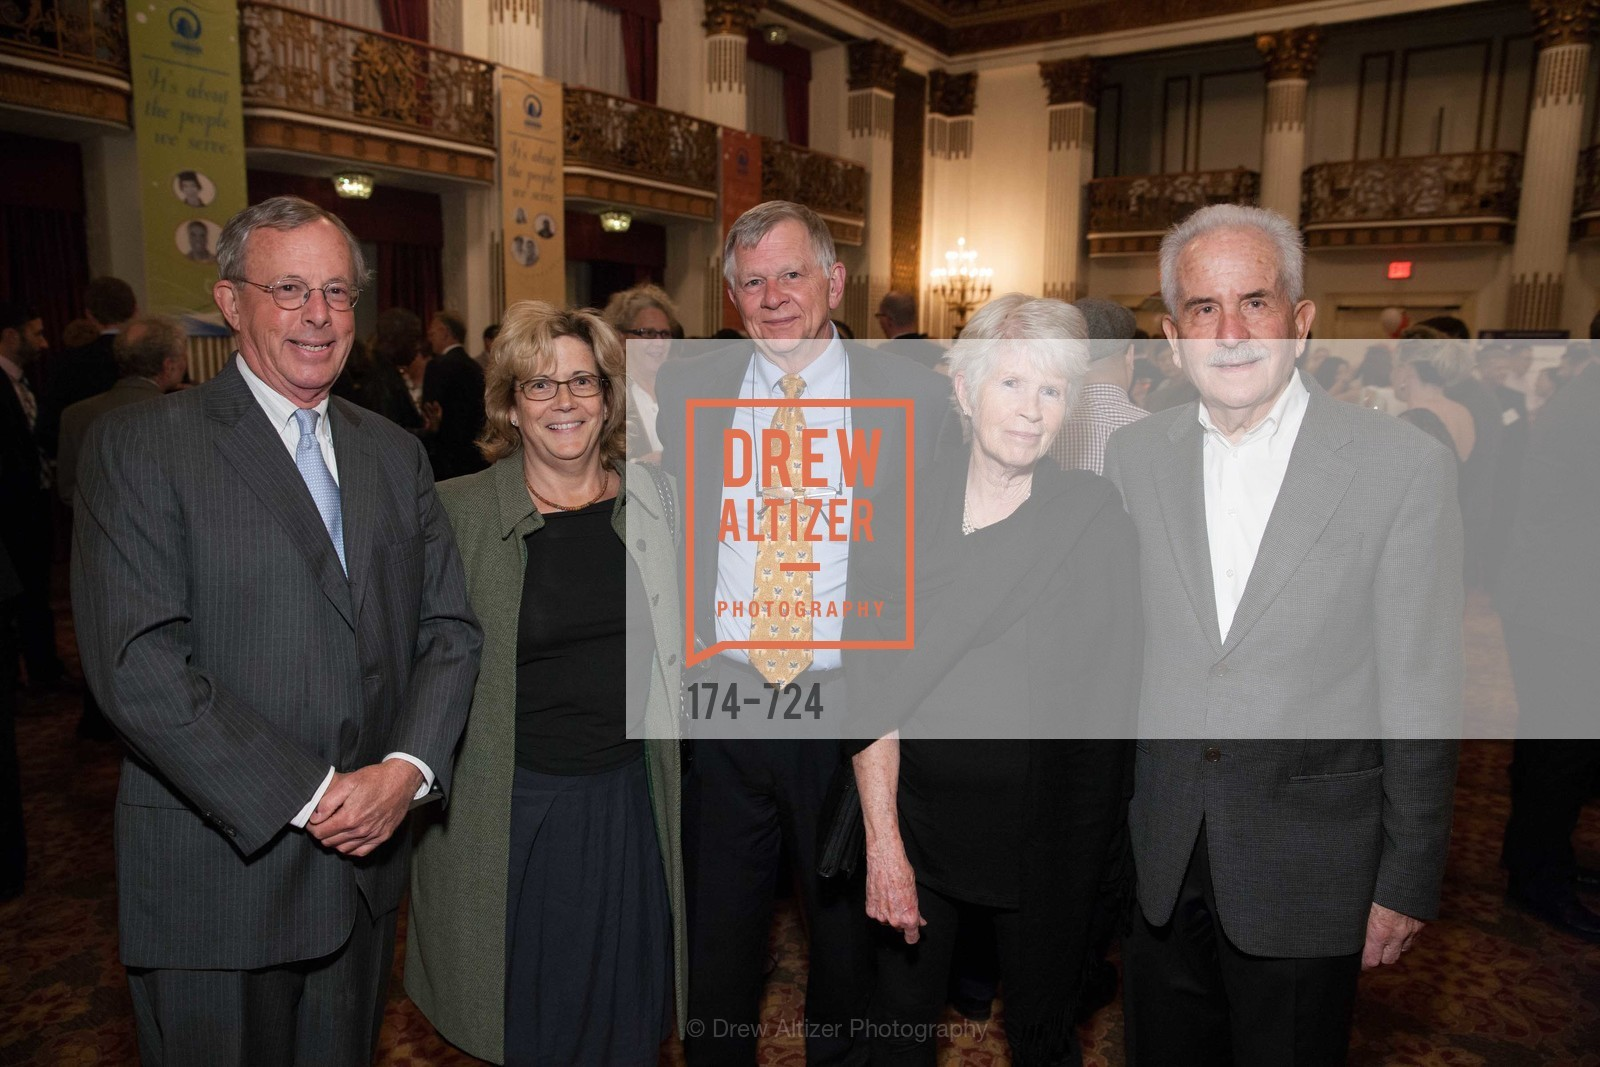 Ken Odell, Radha Stern, Paul Fouts, Maryann Bridenbaugh, Gary Maxworthy, TNDC's 34th Annual Birthday Dinner, US, May 13th, 2015,Drew Altizer, Drew Altizer Photography, full-service agency, private events, San Francisco photographer, photographer california